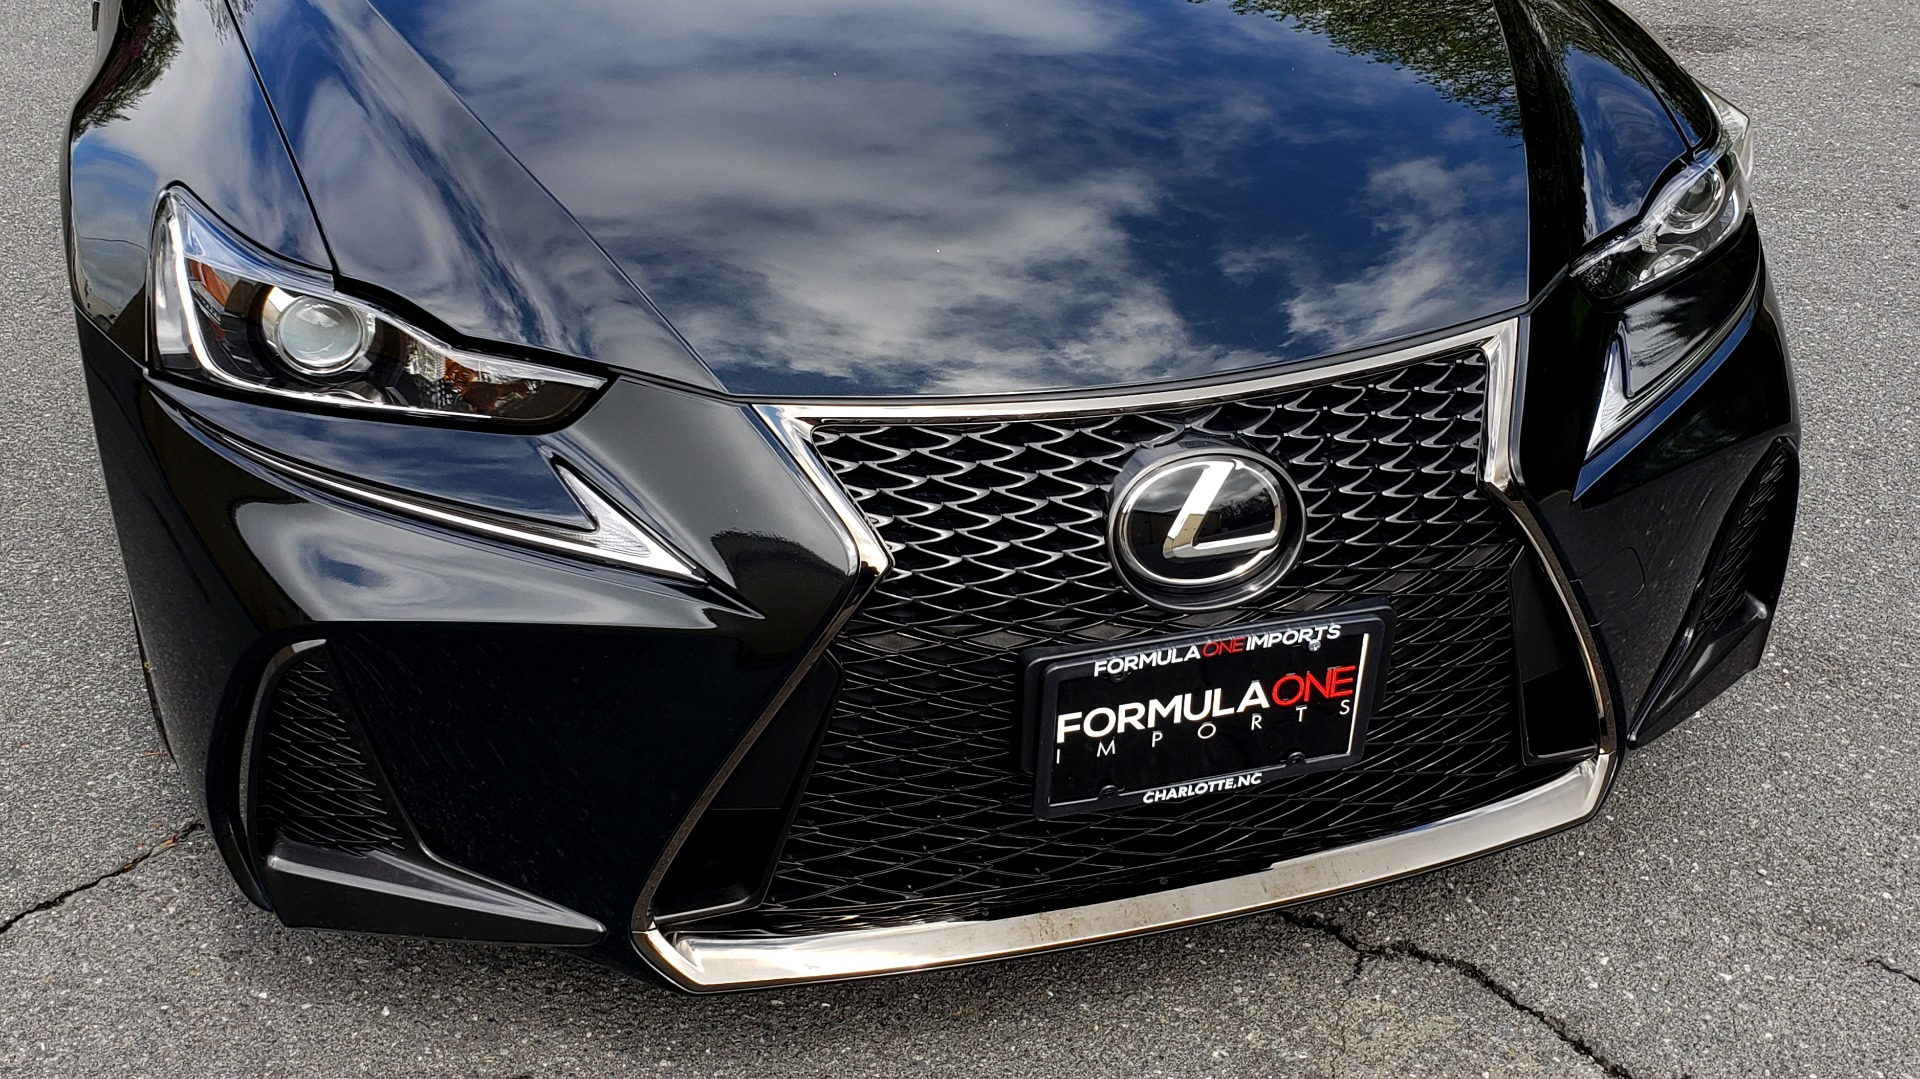 Used 2017 Lexus IS 300 F SPORT AWD / NAV / SUNROOF / REARVIEW / VENT SEATS / BSM for sale Sold at Formula Imports in Charlotte NC 28227 18